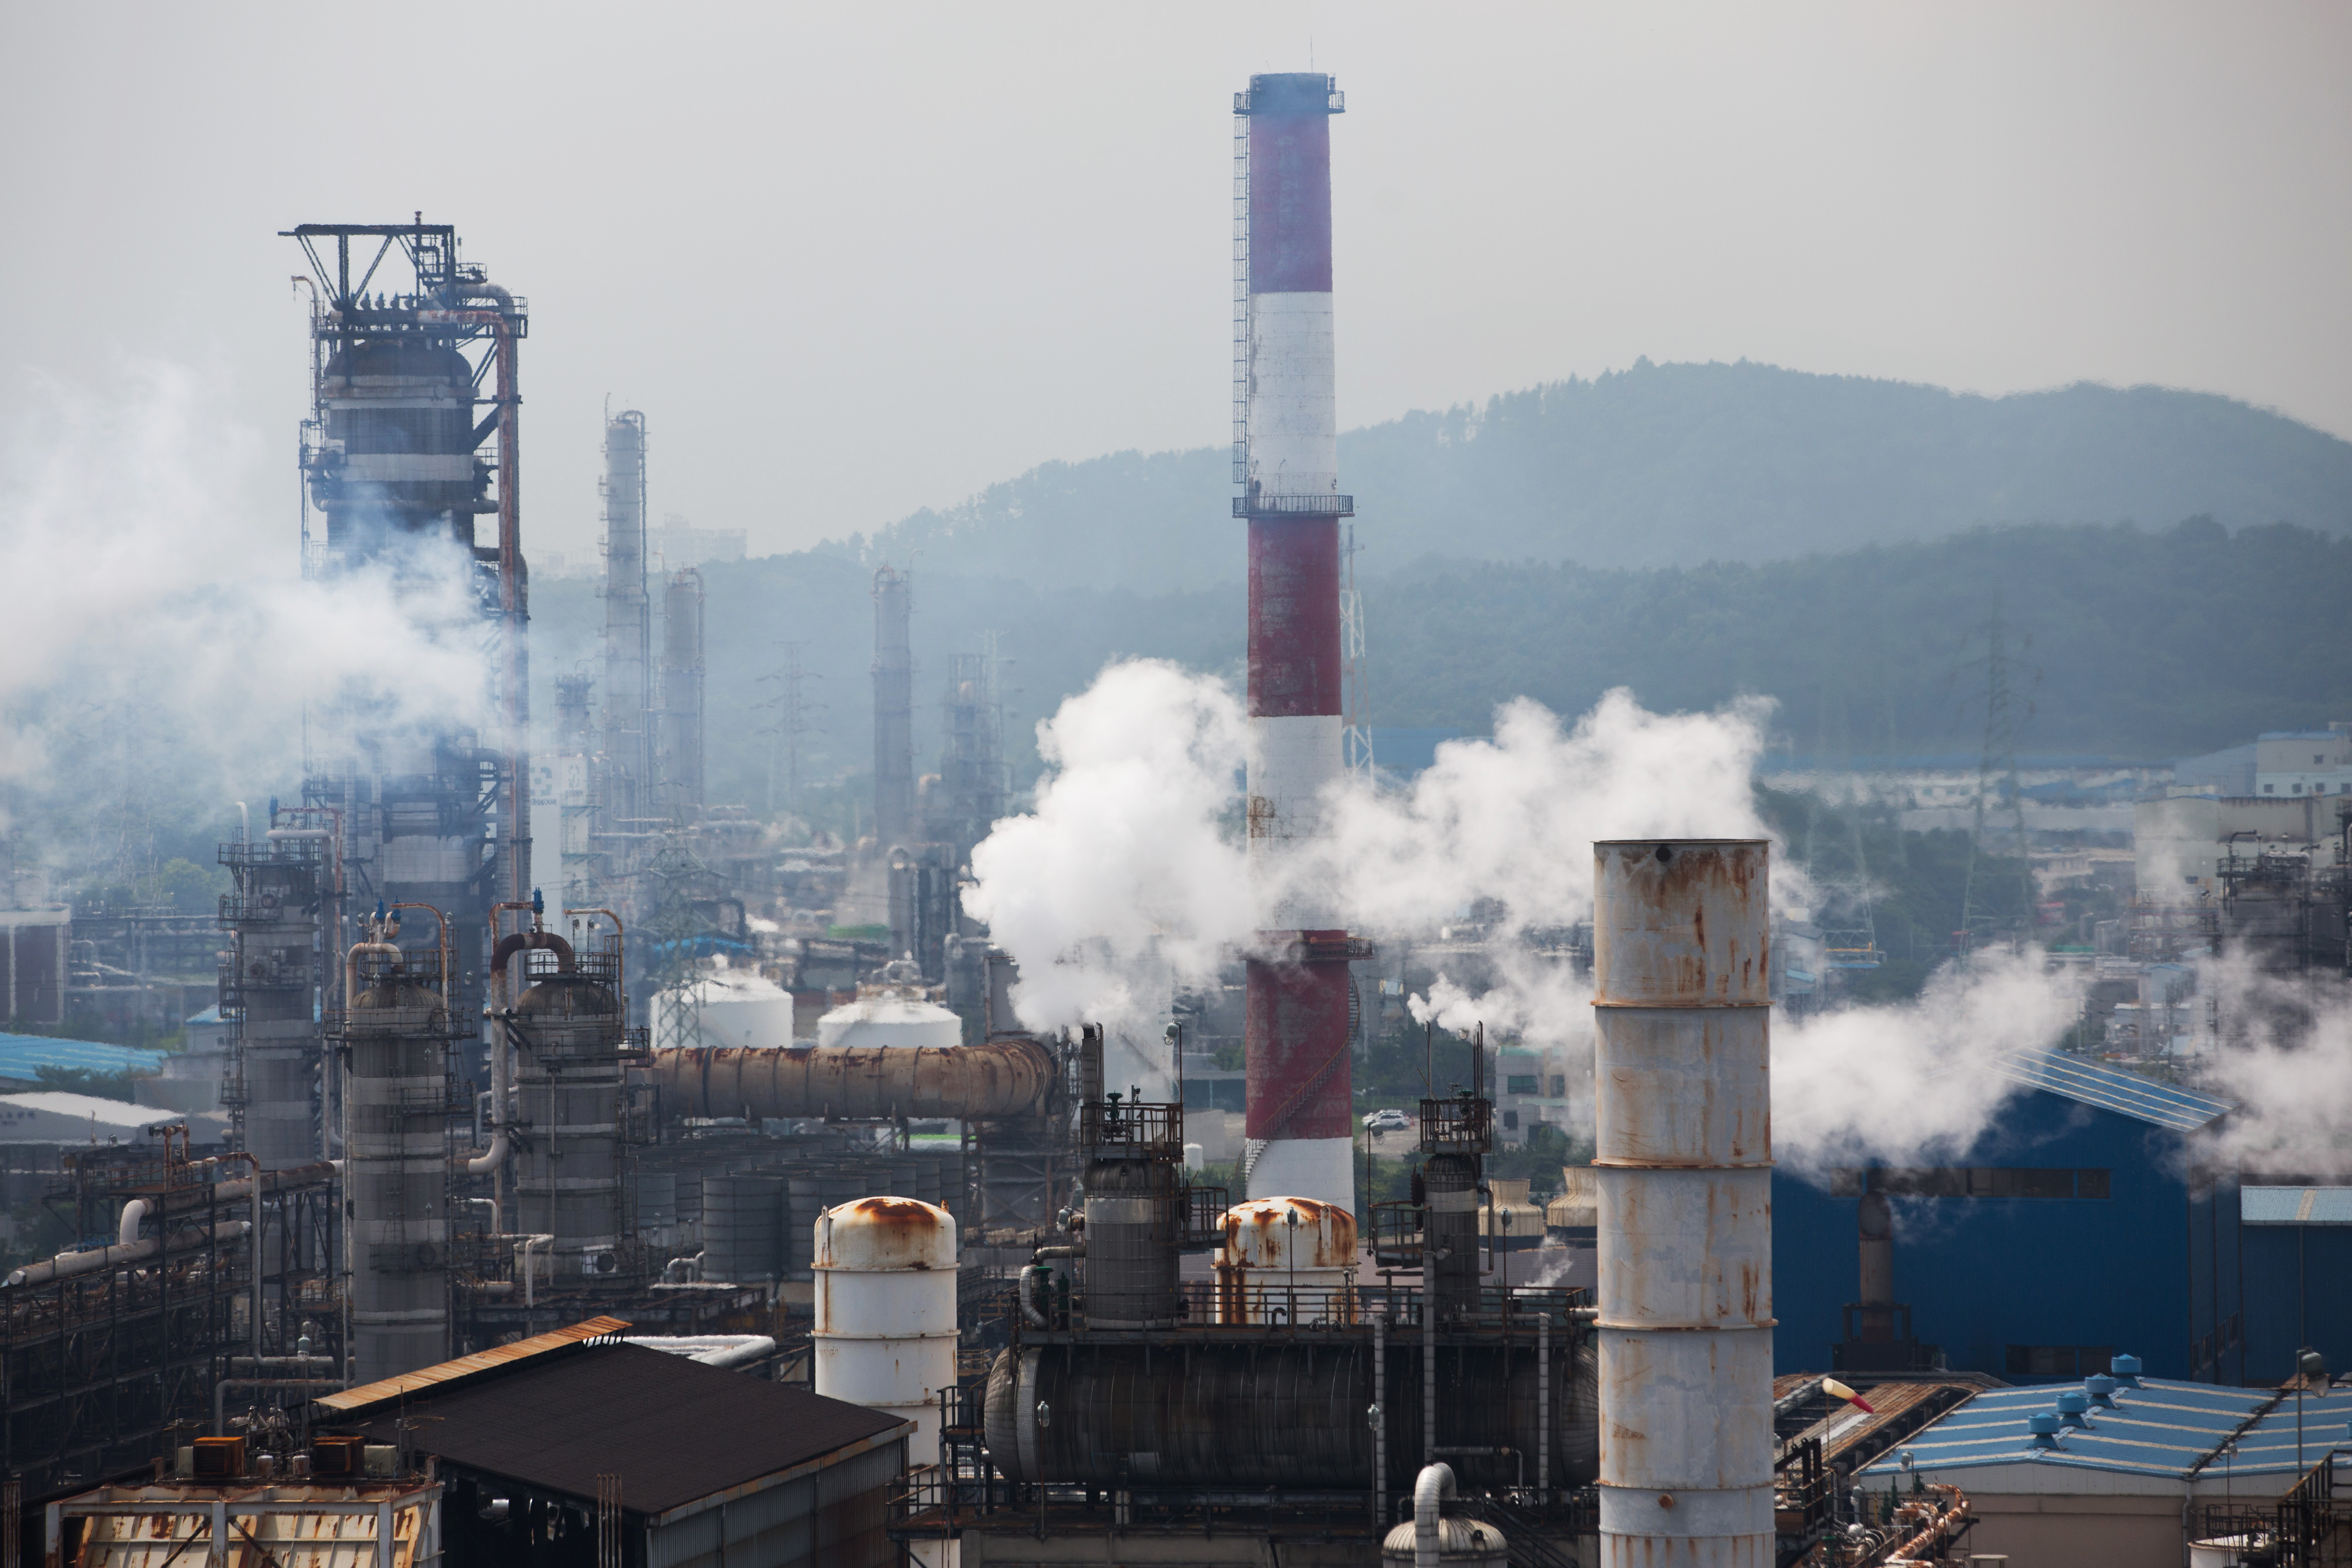 SK Innovation Co.'s Ulsan Complex oil refinery facilities operate in Ulsan, South Korea, on Tuesday, July 21, 2015.